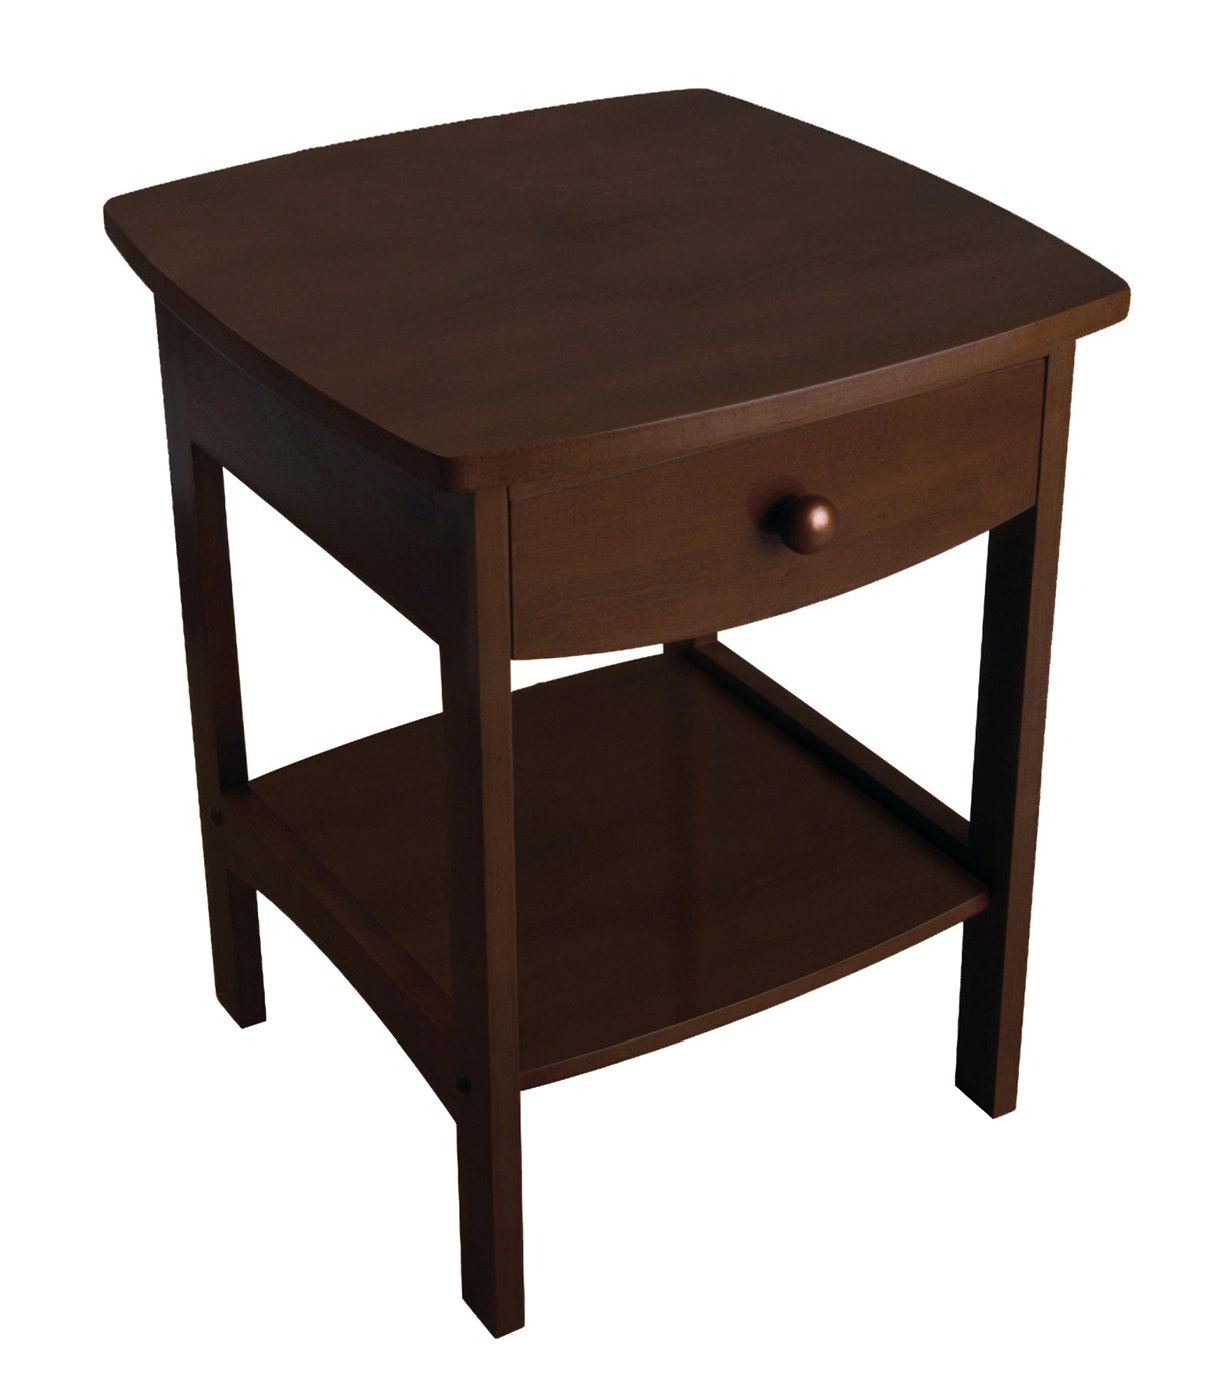 winsome wood claire accent table walnut kitchen square dining target threshold gold side expandable outdoor small decorative tables mid century modern nightstand corner writing